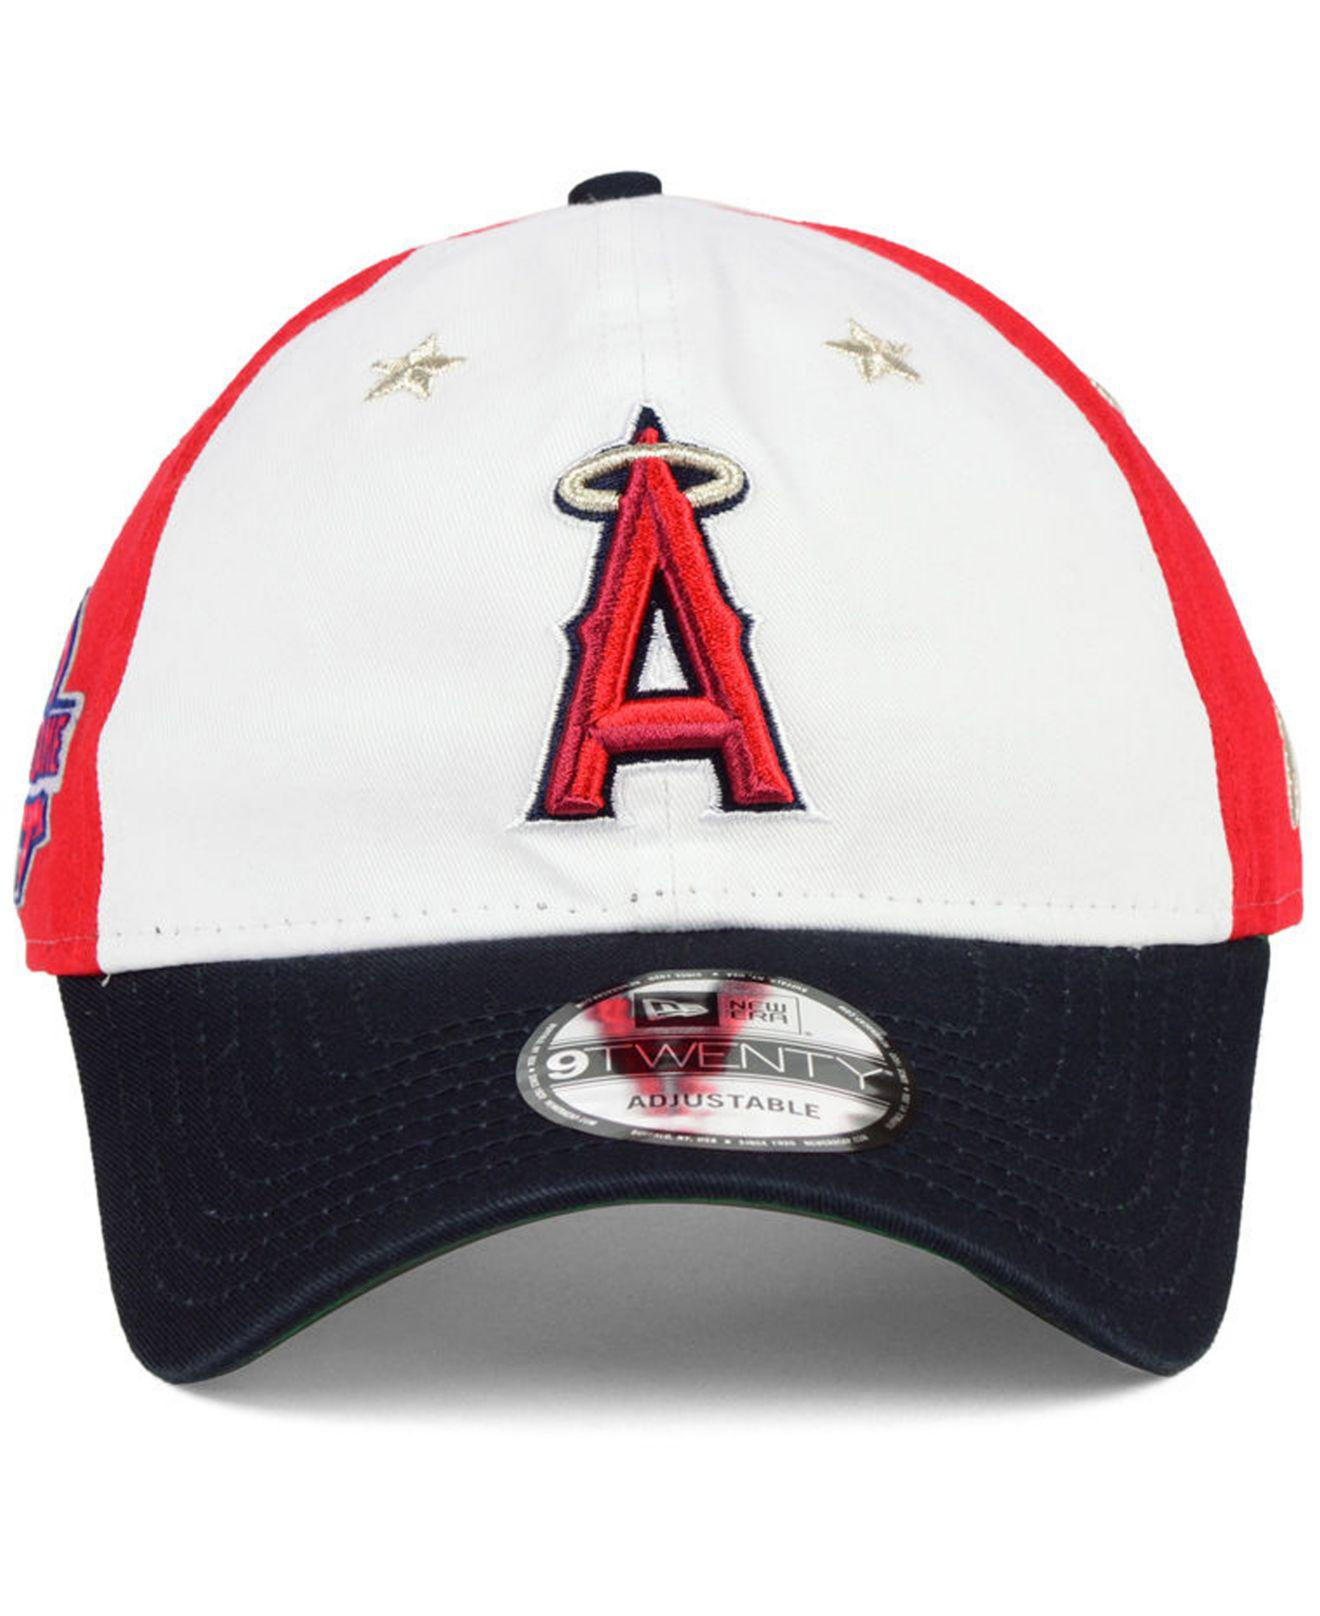 new product d35d7 72e52 ... best lyst ktz los angeles angels all star game 9twenty strapback cap  2018 in red for